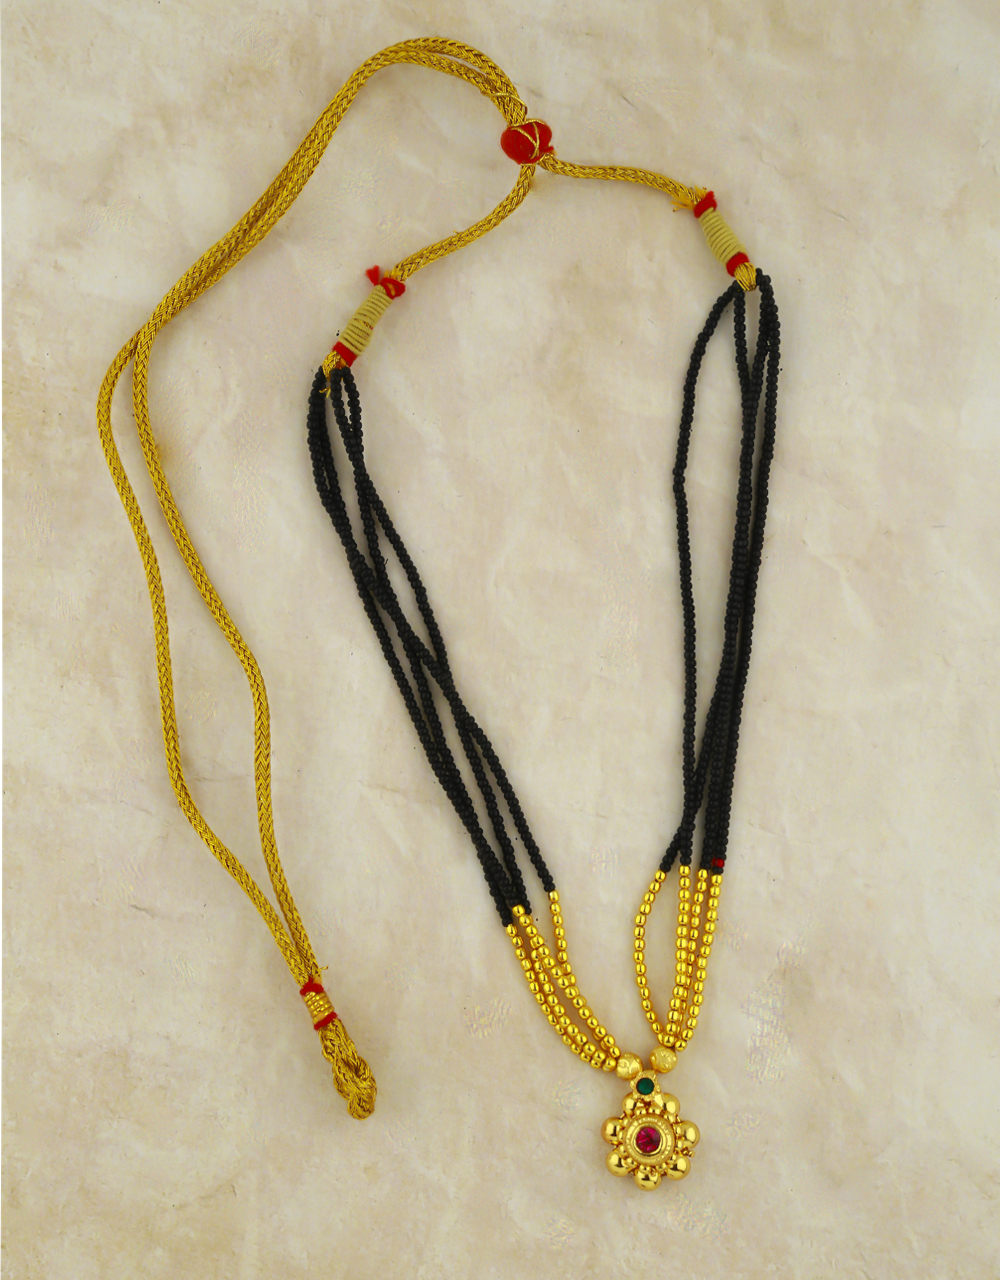 Adorable Thushi Mangalsutra for Women Styled with Round Pendant